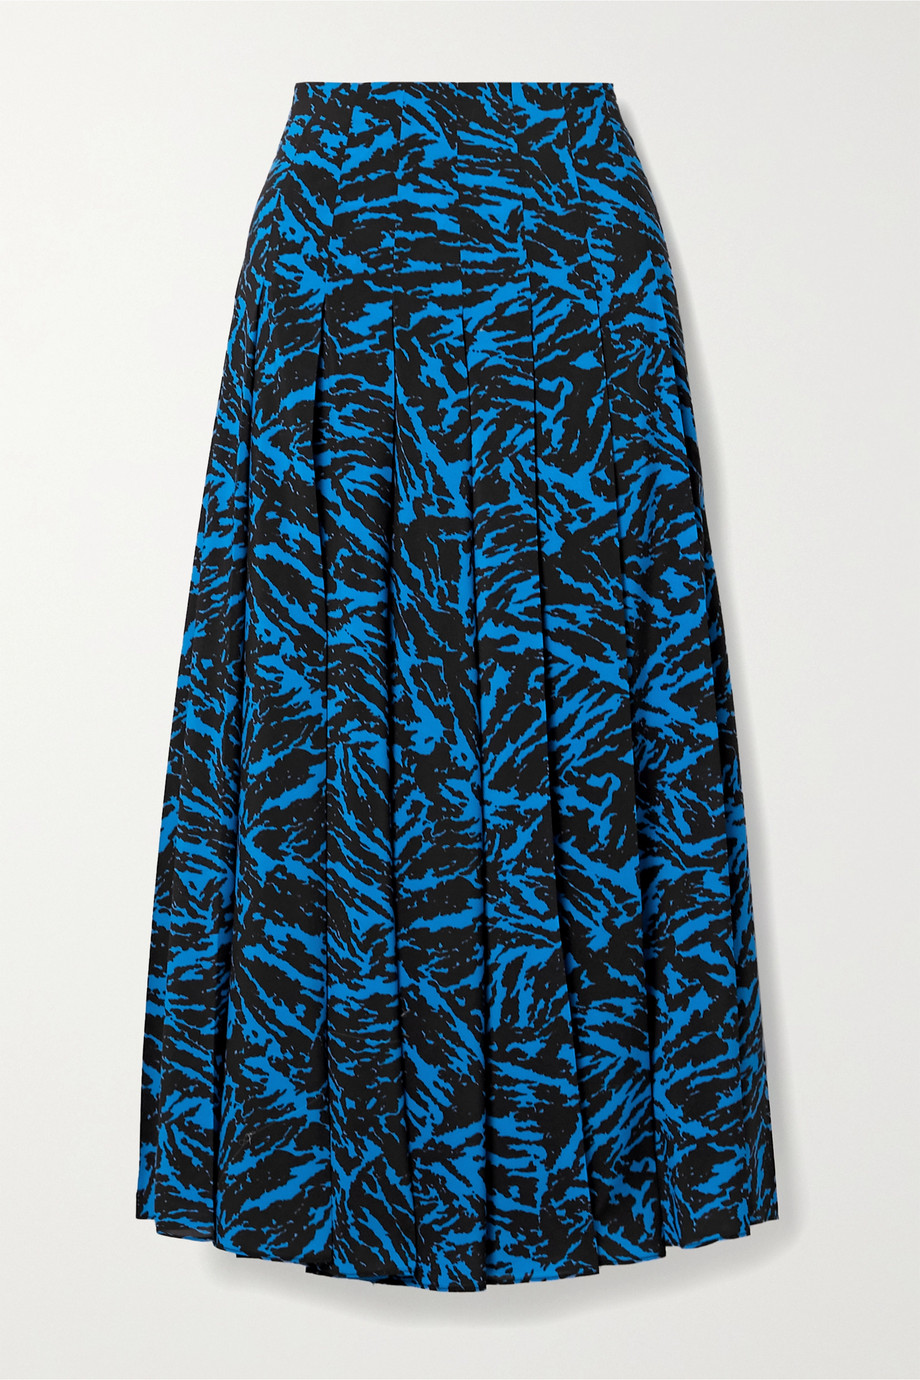 Jason Wu Pleated zebra-print crepe midi skirt